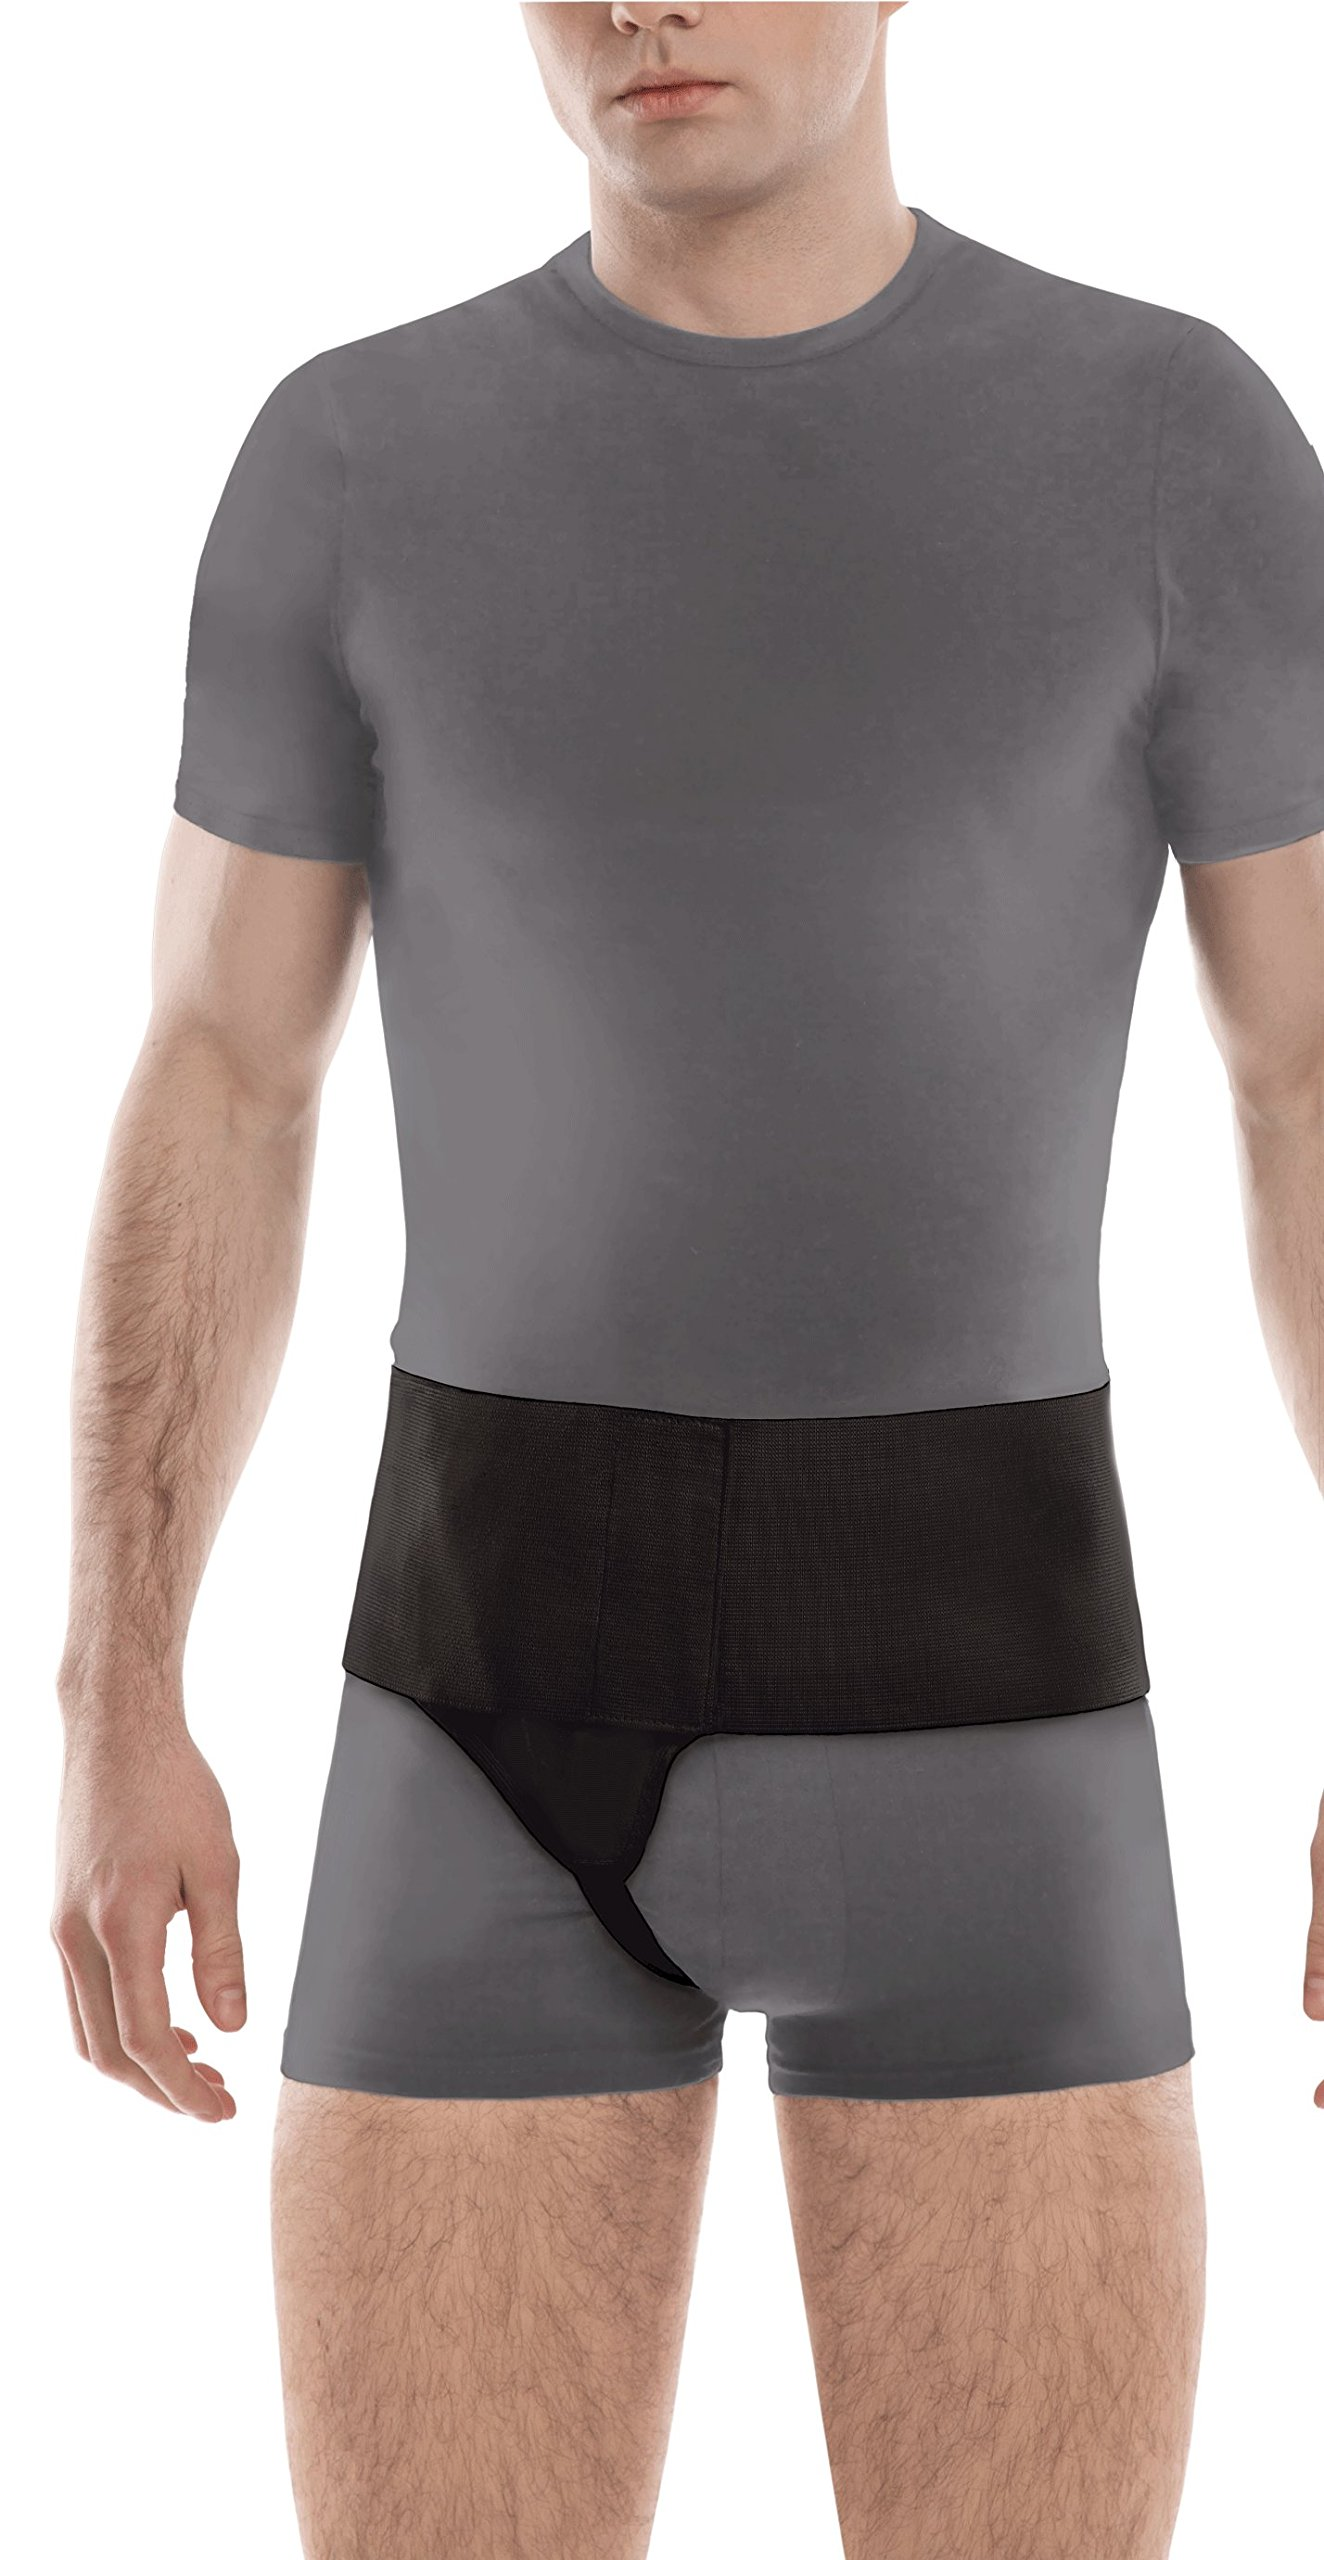 Right Side Inguinal Groin Hernia Belt X-Small Black